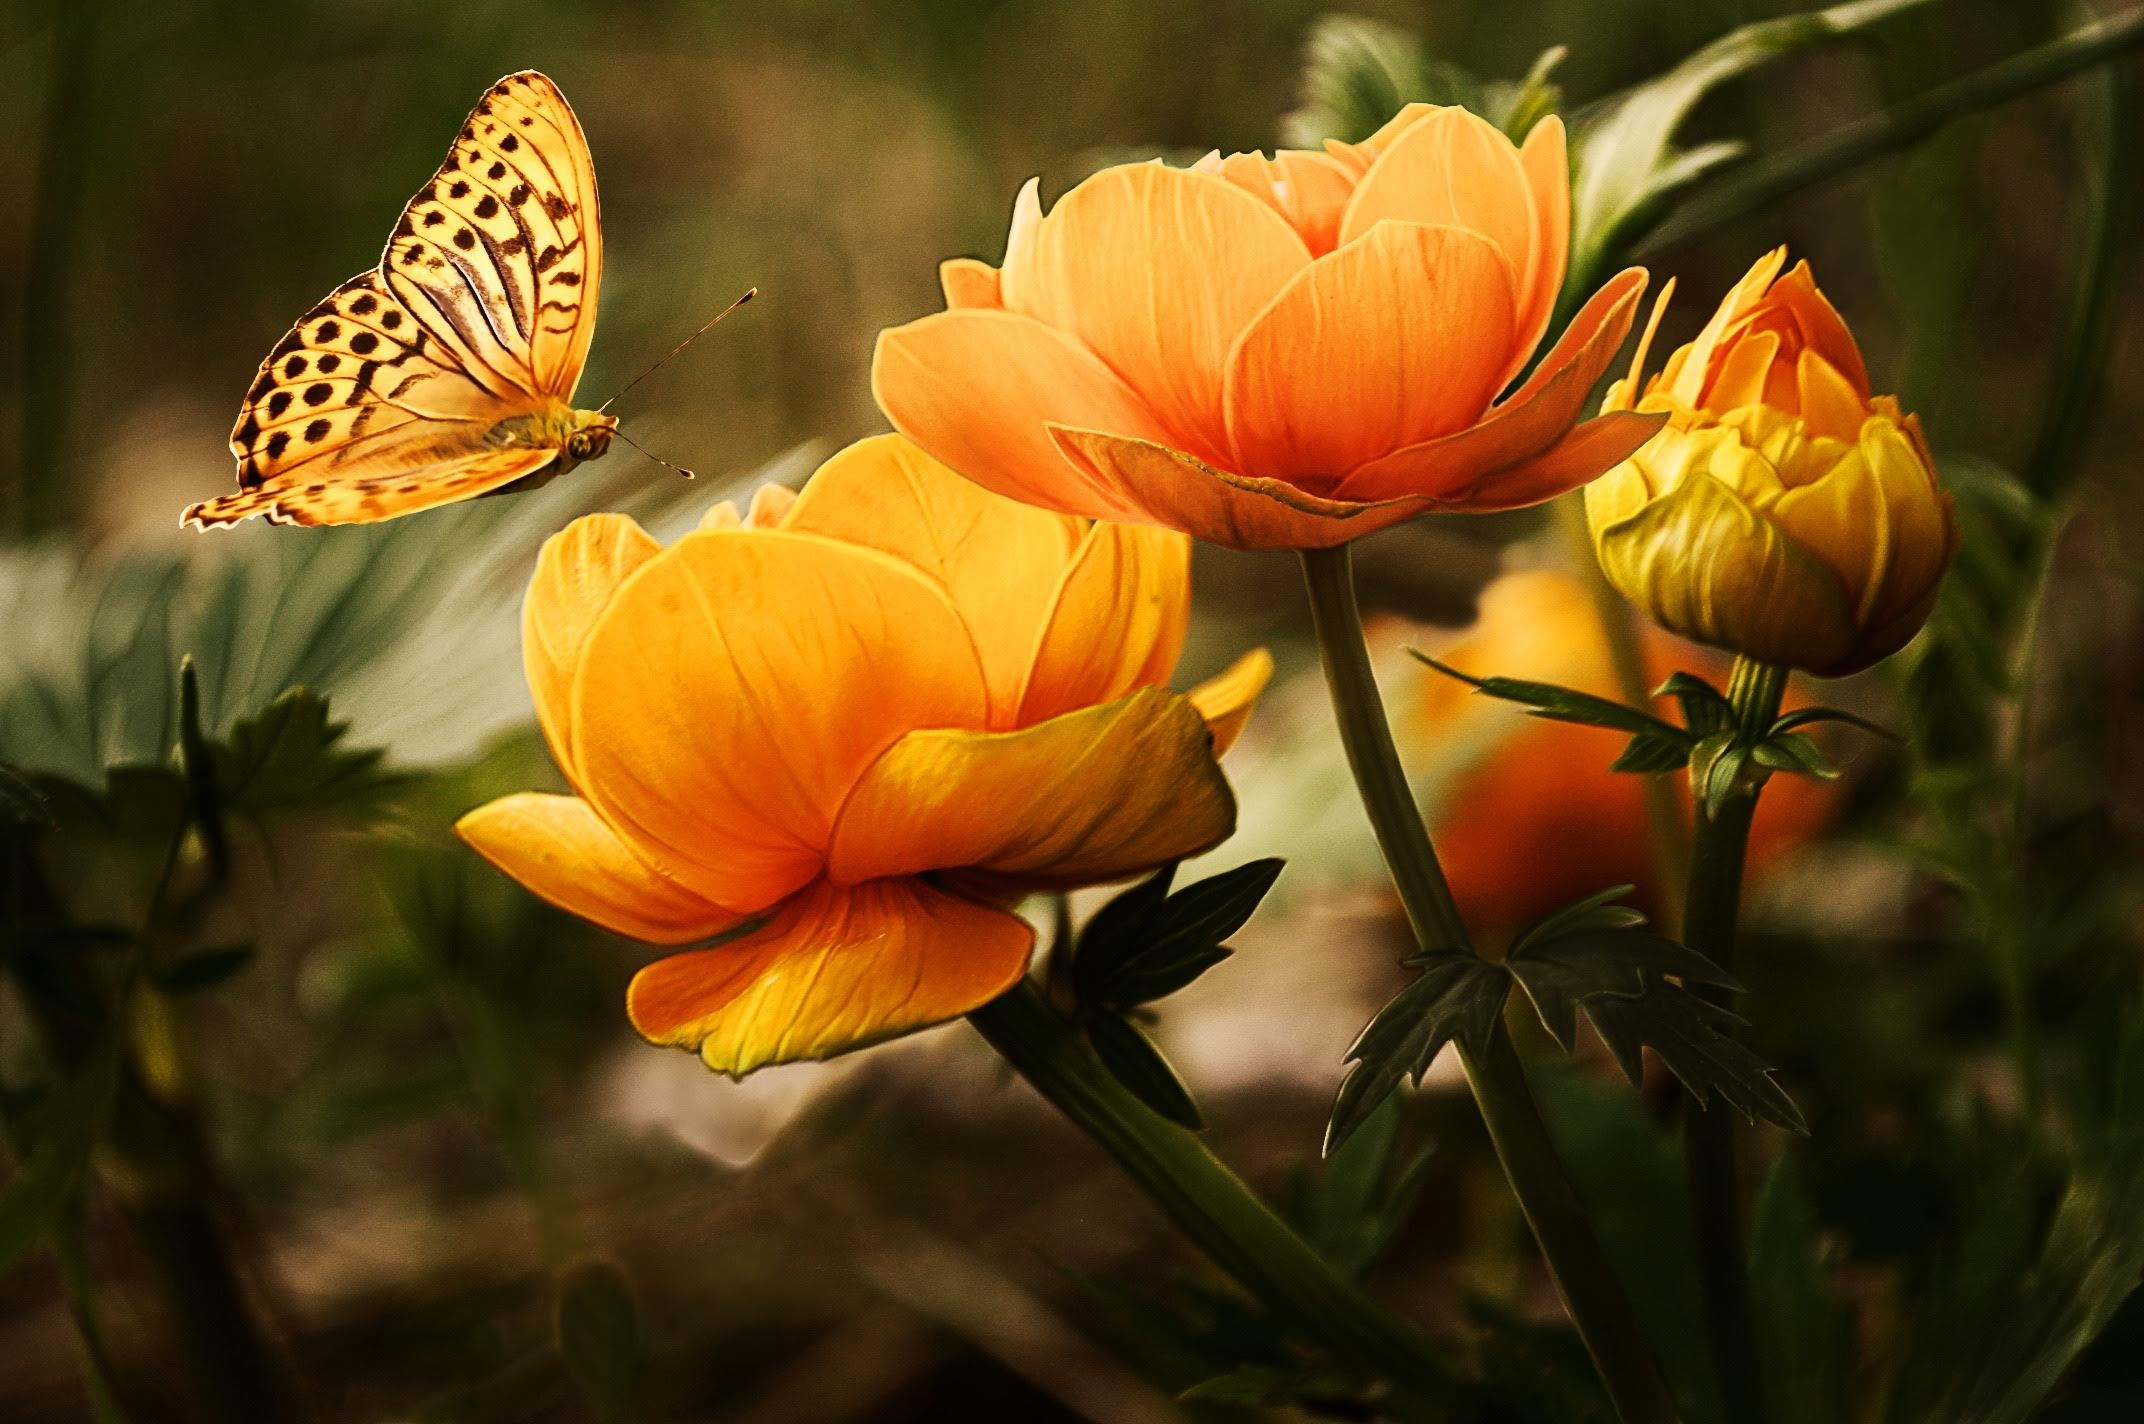 112 flowers-background-butterflies-beautiful-87452.jpeg